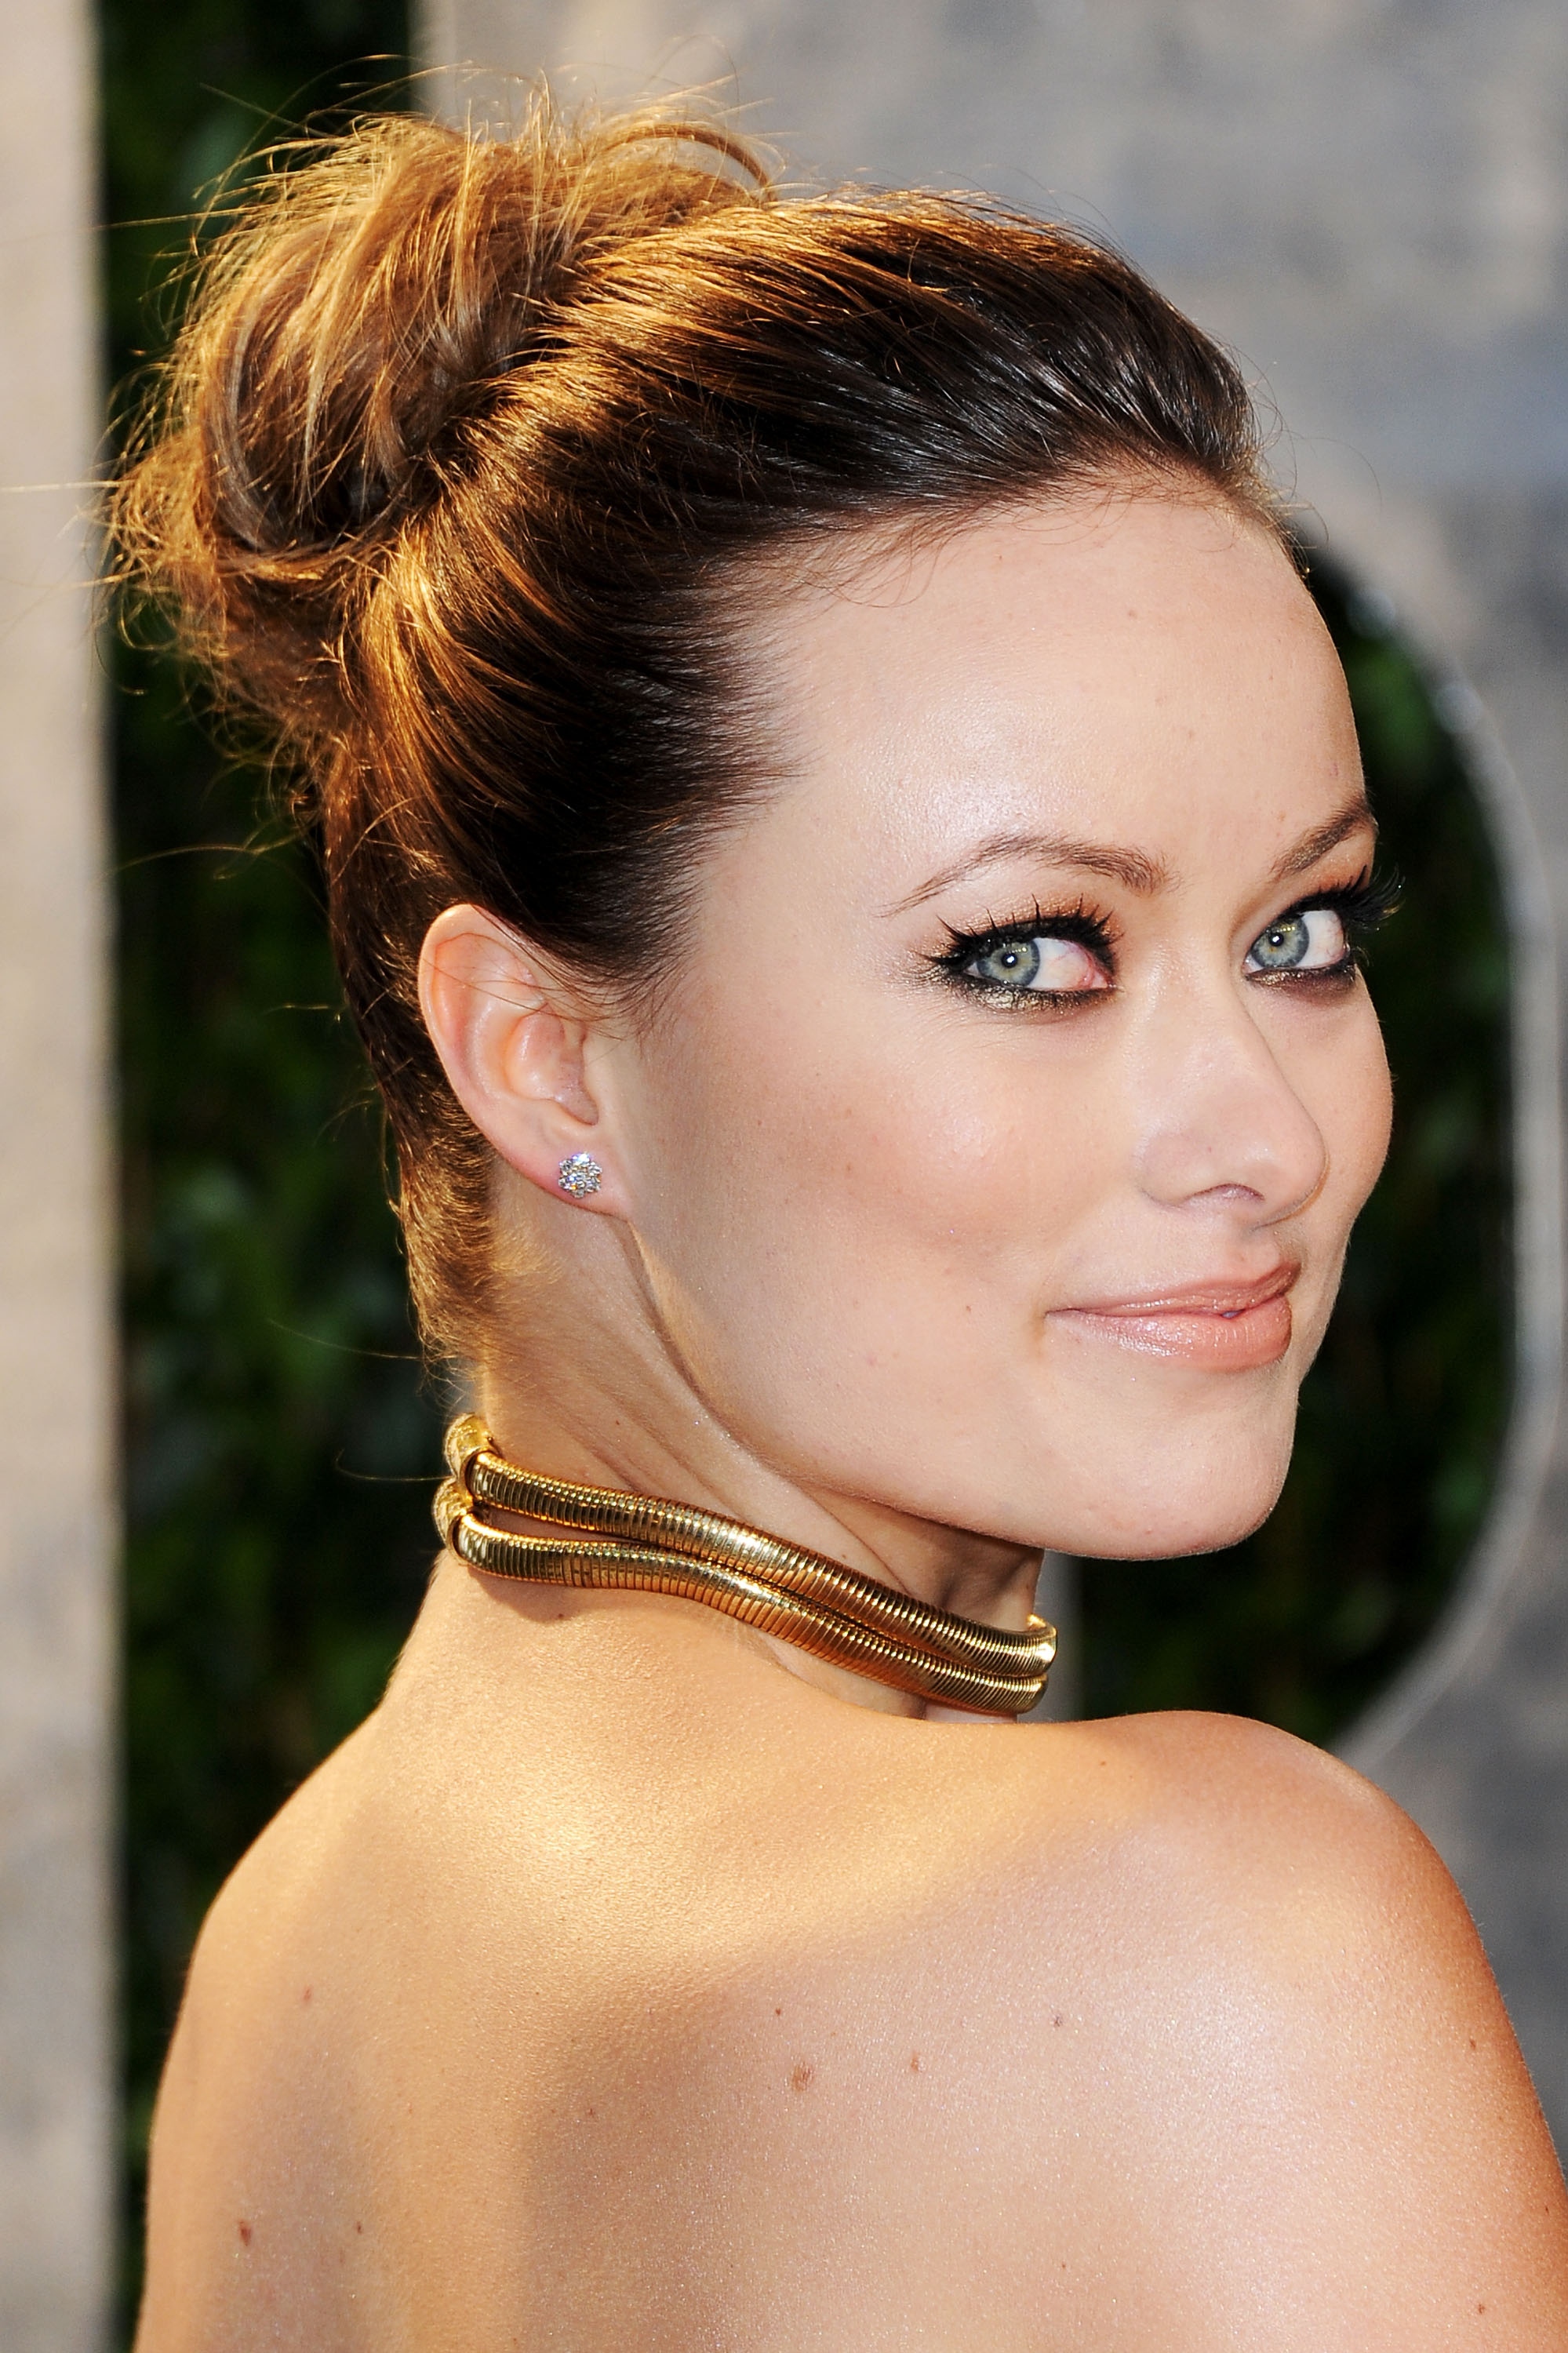 Olivia Wilde Cleavage In Tight Dress At Vanity Fair Oscar